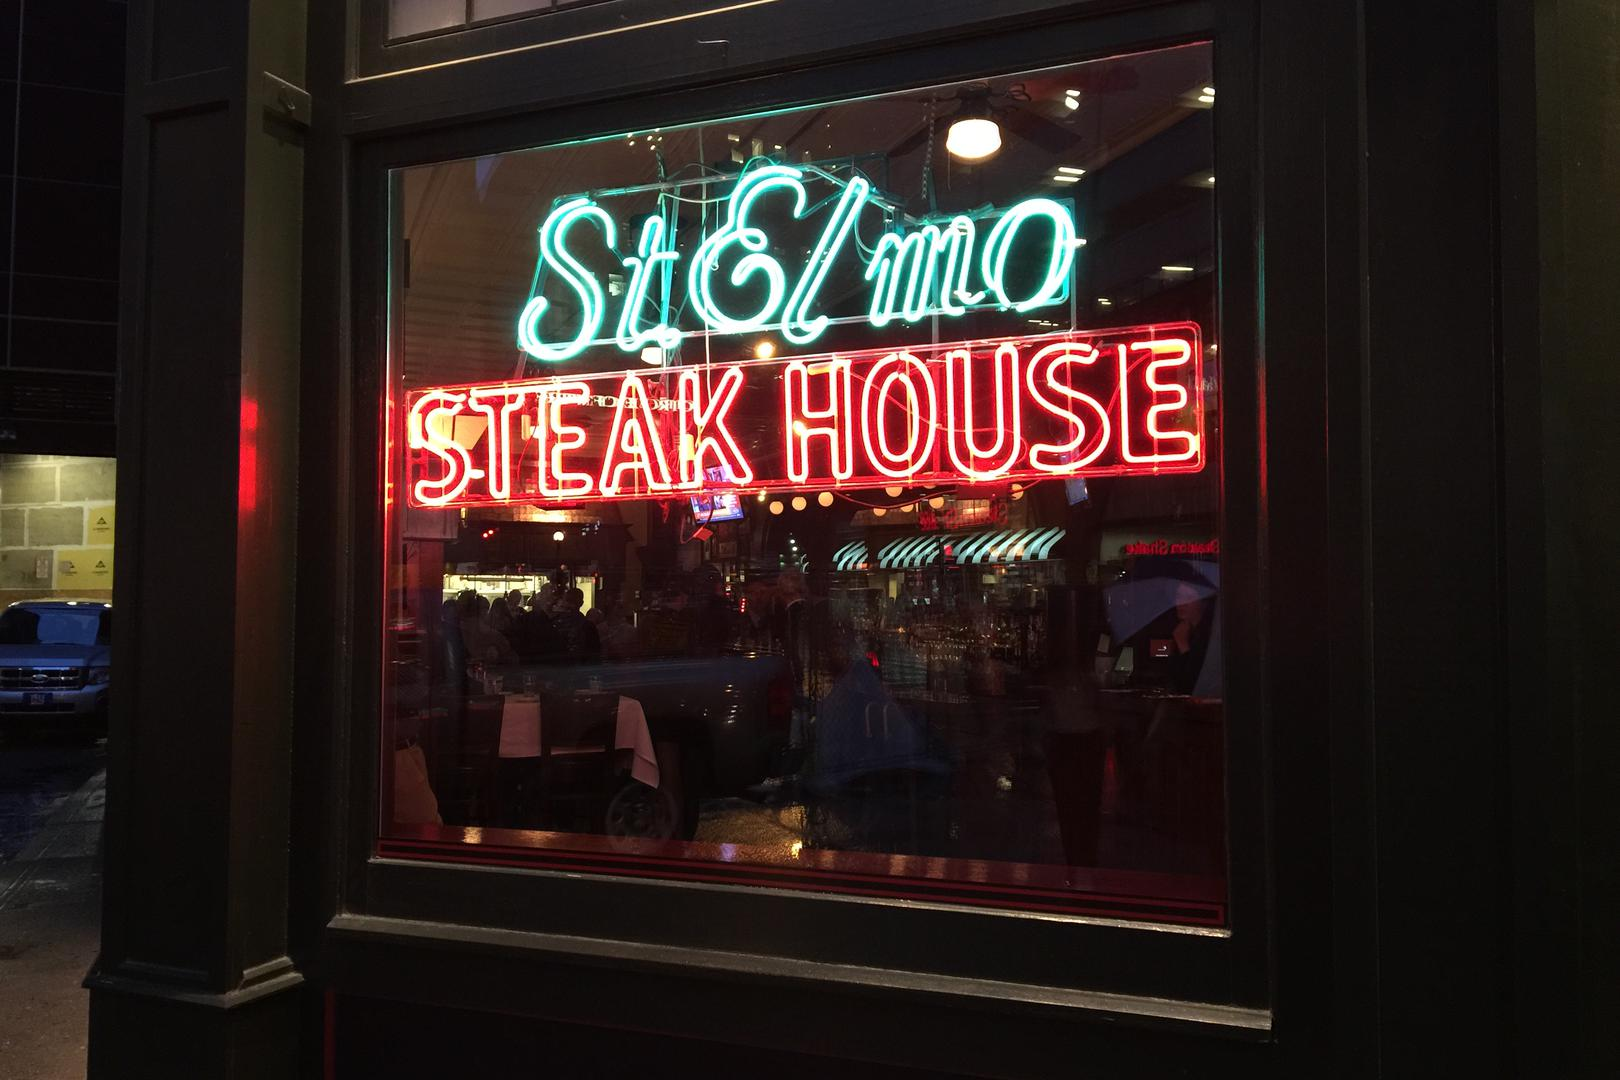 space at St. Elmo Steak House